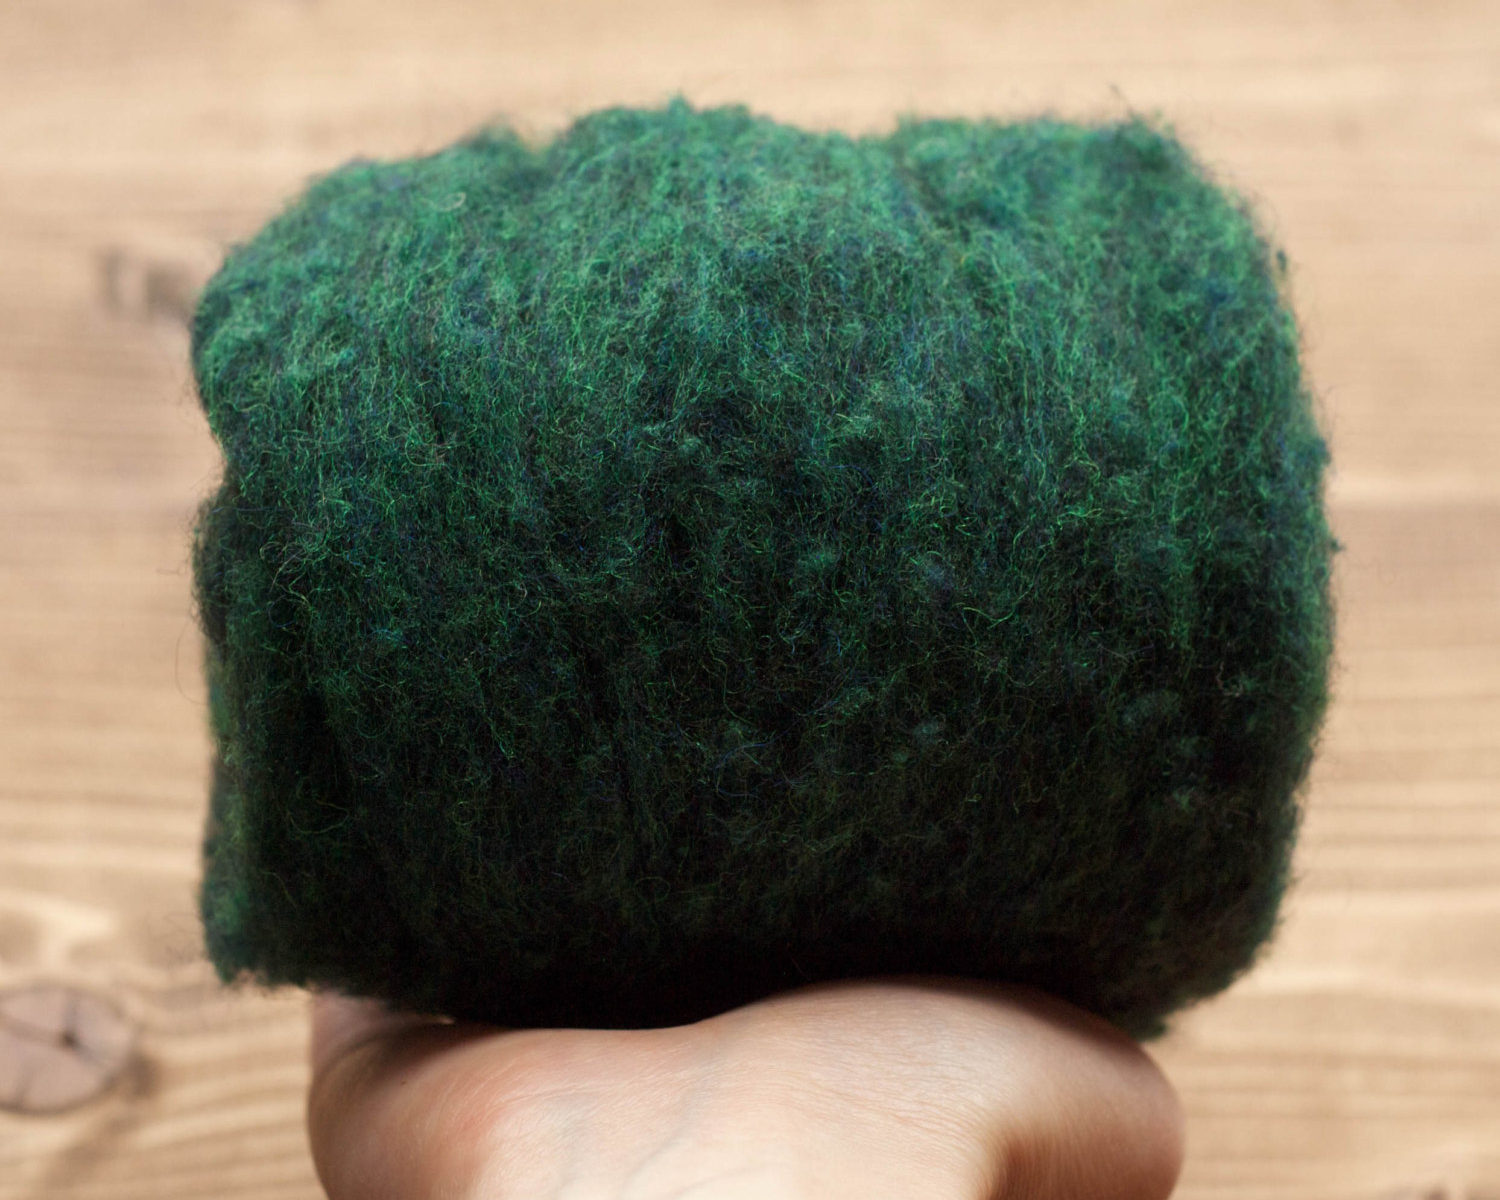 Evergreen Needle Felting Wool, Wool Batting, Batts, Wet Felting, Spinning, Dyed Felting Wool, Forest Green, Fiber Art Supplies